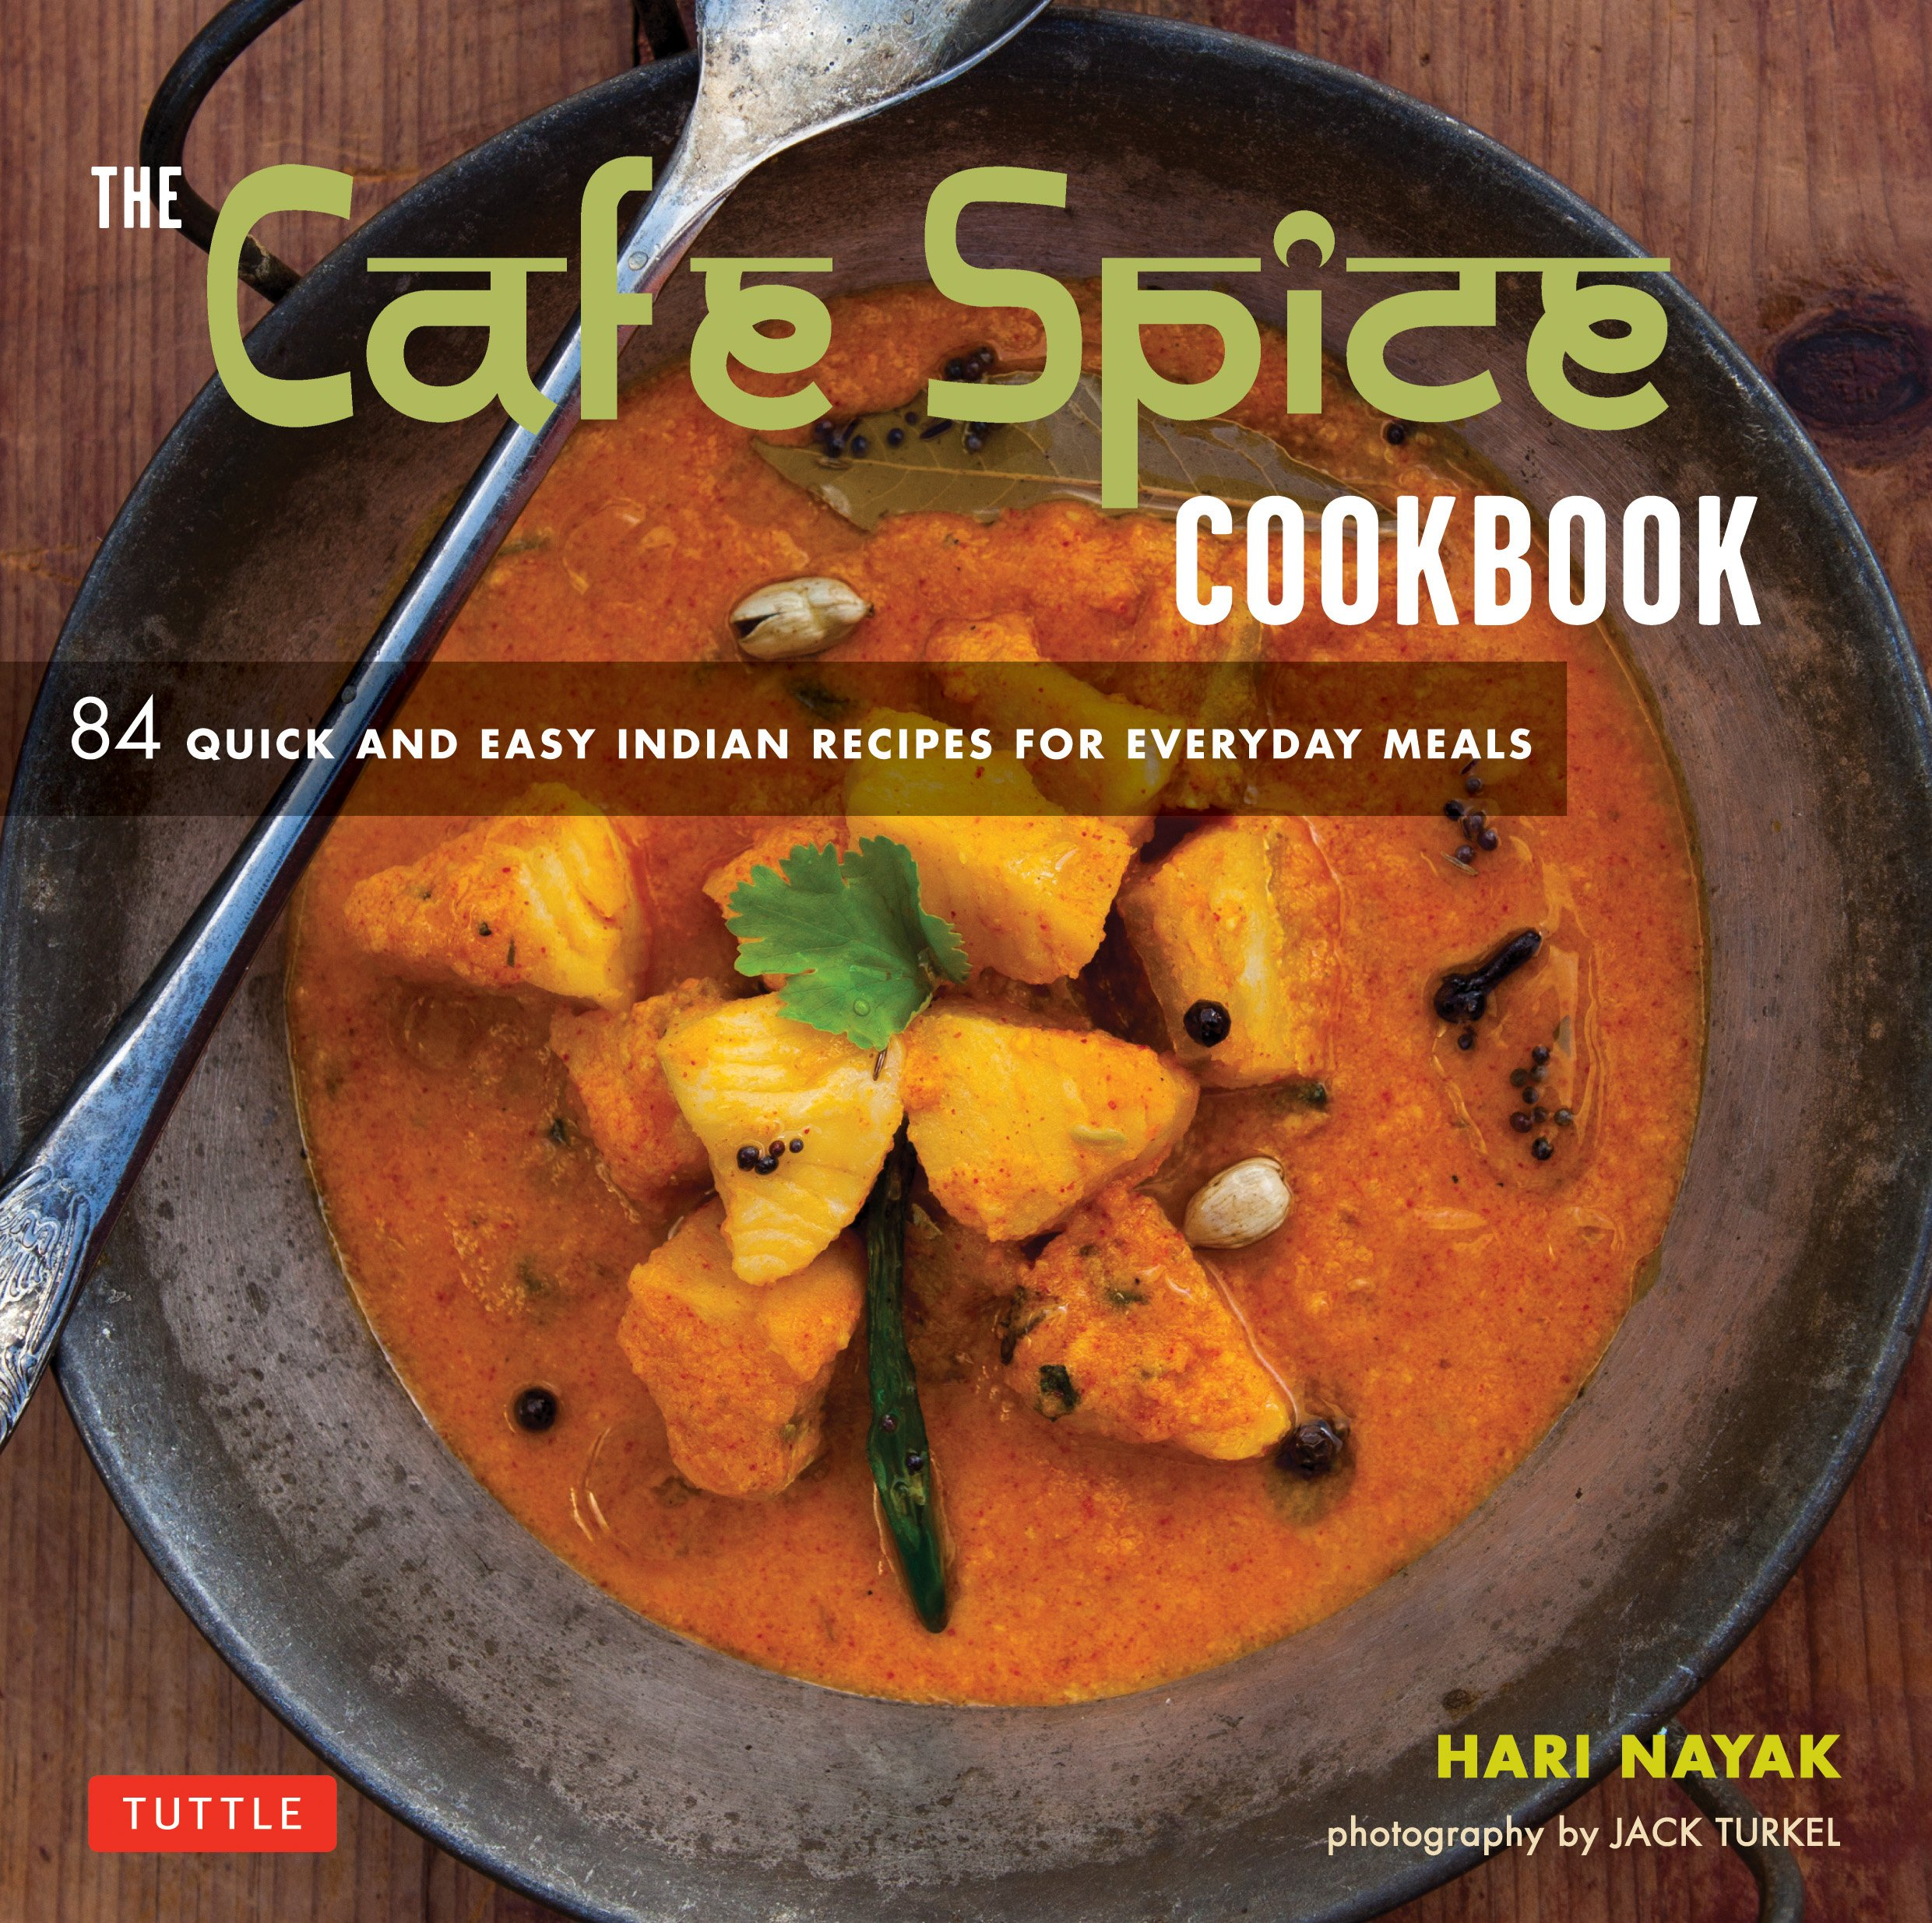 The Cafe Spice Cookbook 84 Quick And Easy Indian Recipes For